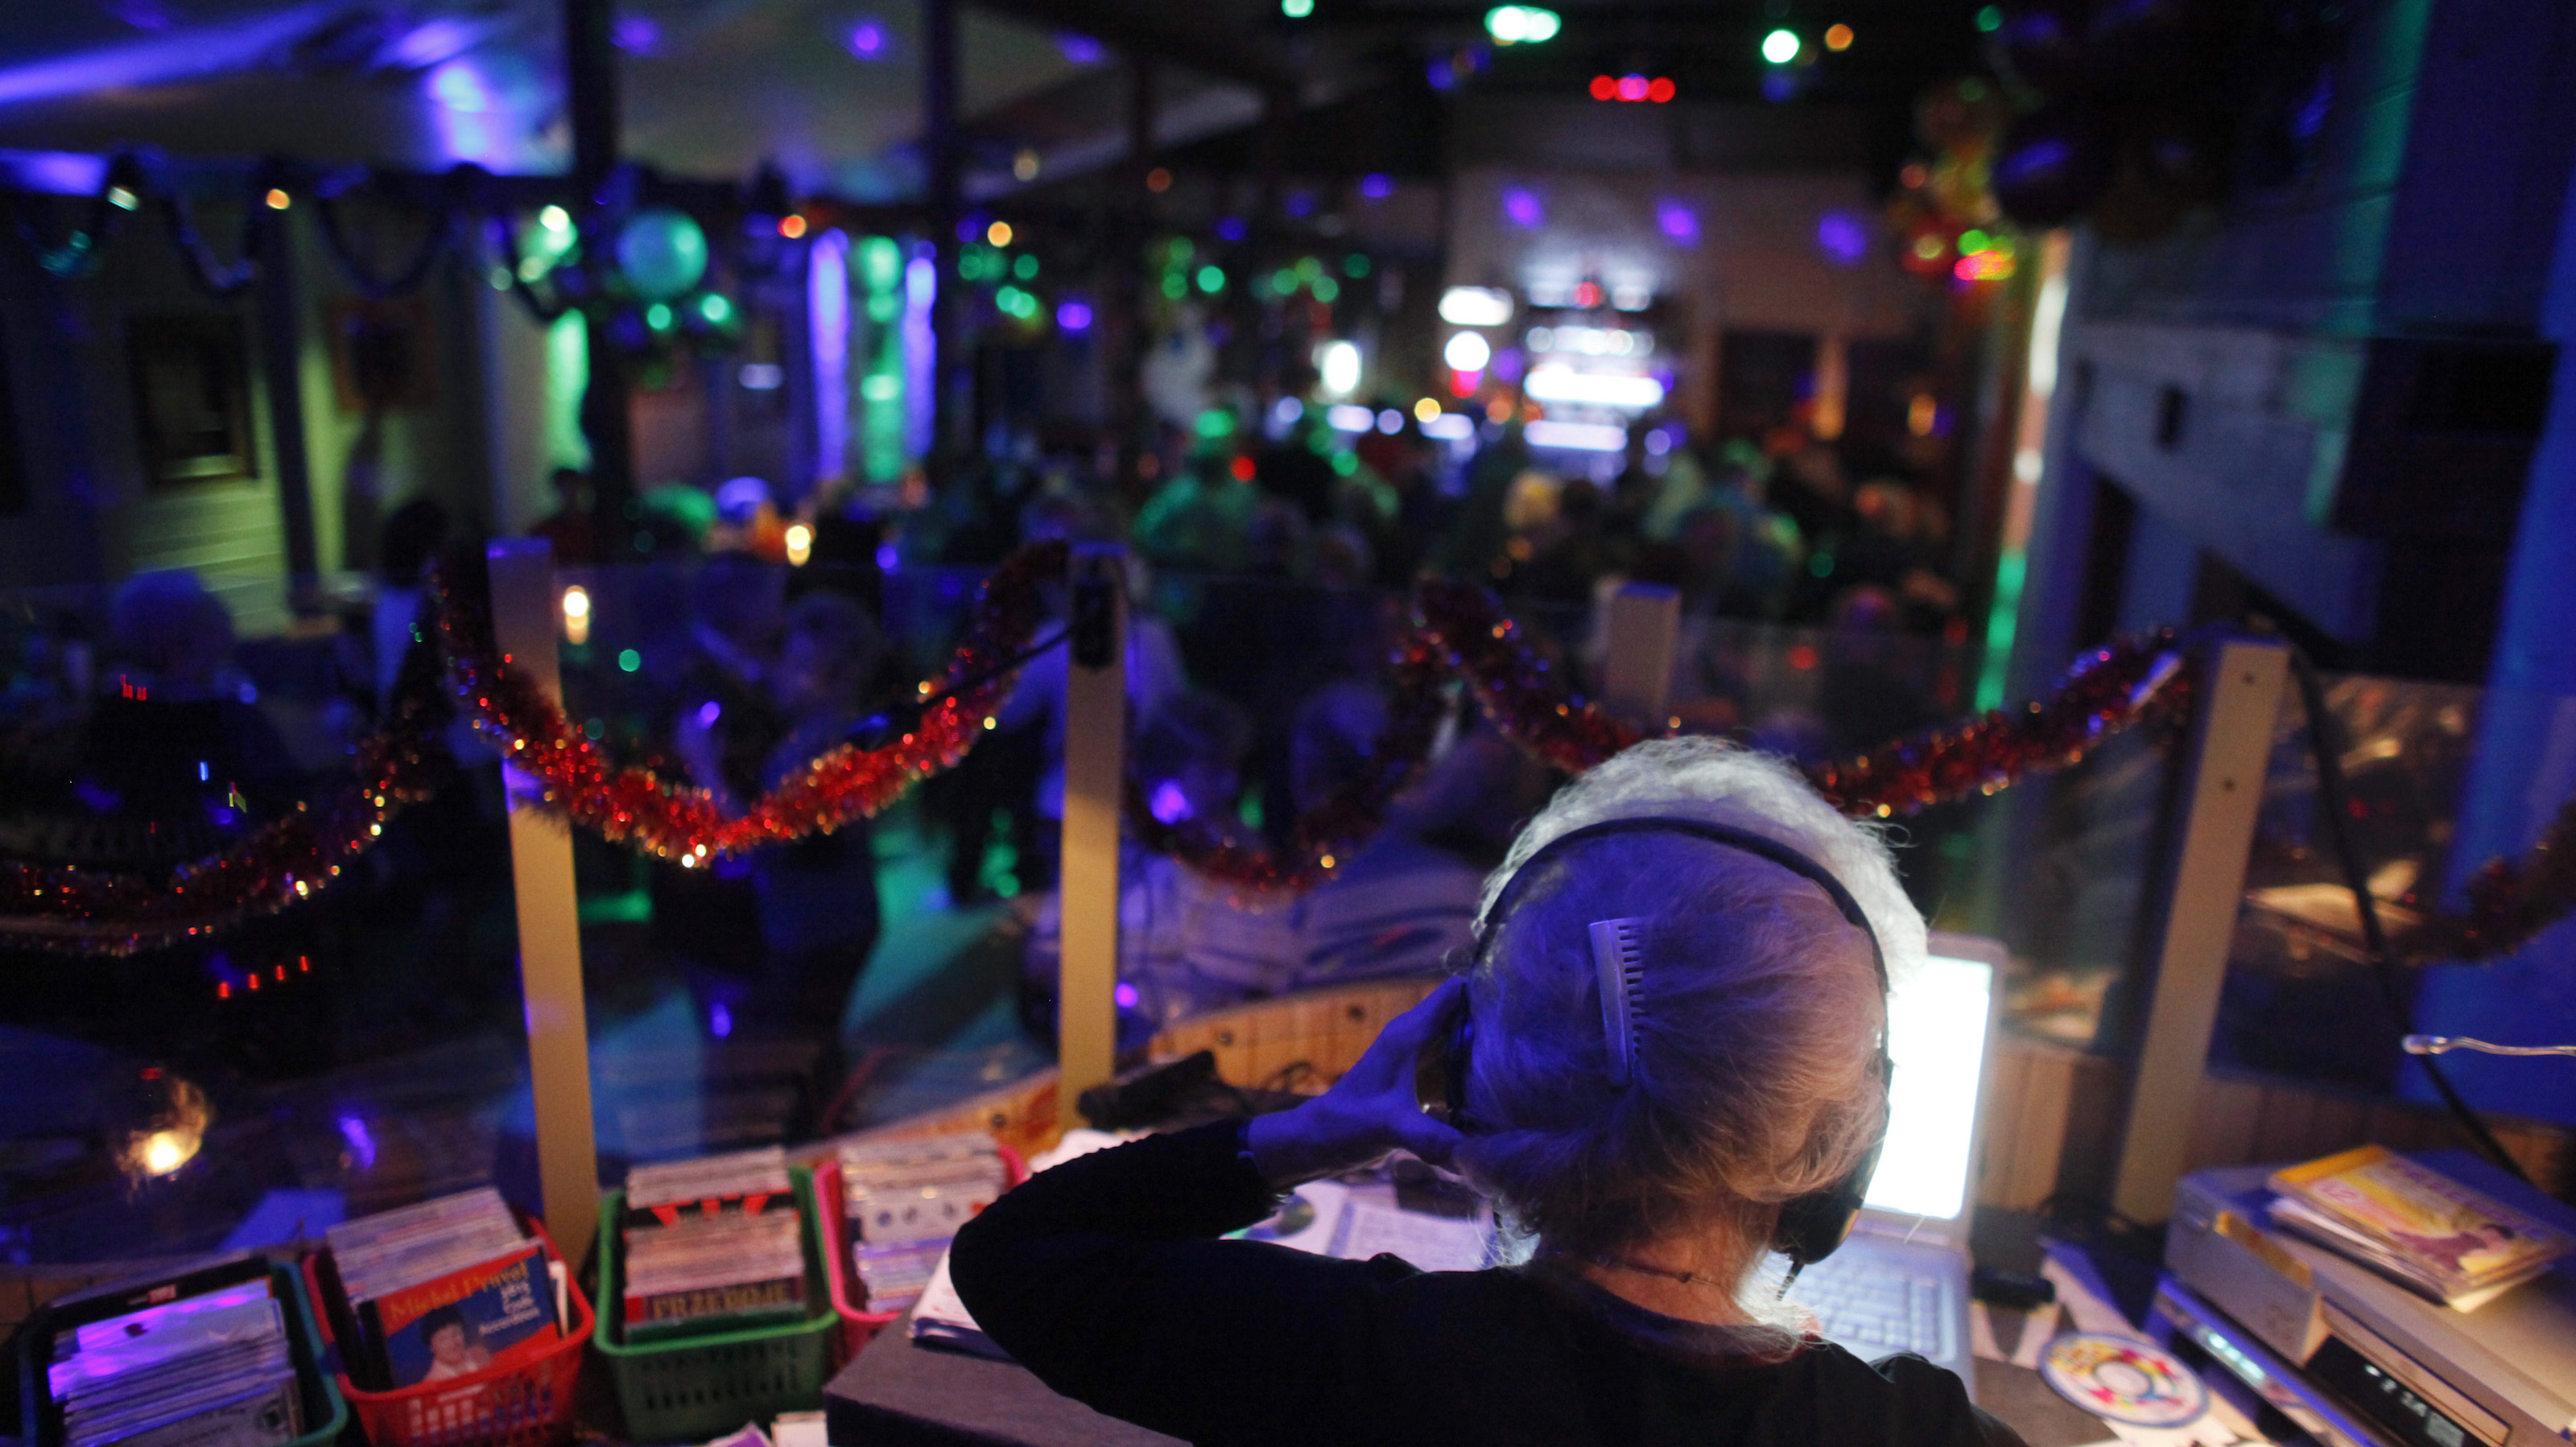 DJ Wika Szmyt plays music at a club in Warsaw January 4, 2012. Szmyt, 73, spends her retirement days behind a DJ console watching people dance to her rhythms. She plays disco, rumba or samba for a mostly elderly audience because she feels she is giving them a new take at life. DJ Wika plays in a Warsaw club three days a week but has also been involved in other musical projects, including parties where she plays for a younger and more demanding audience. REUTERS/Kacper Pempel (POLAND - Tags: SOCIETY ENTERTAINMENT) - RTR2VWA8